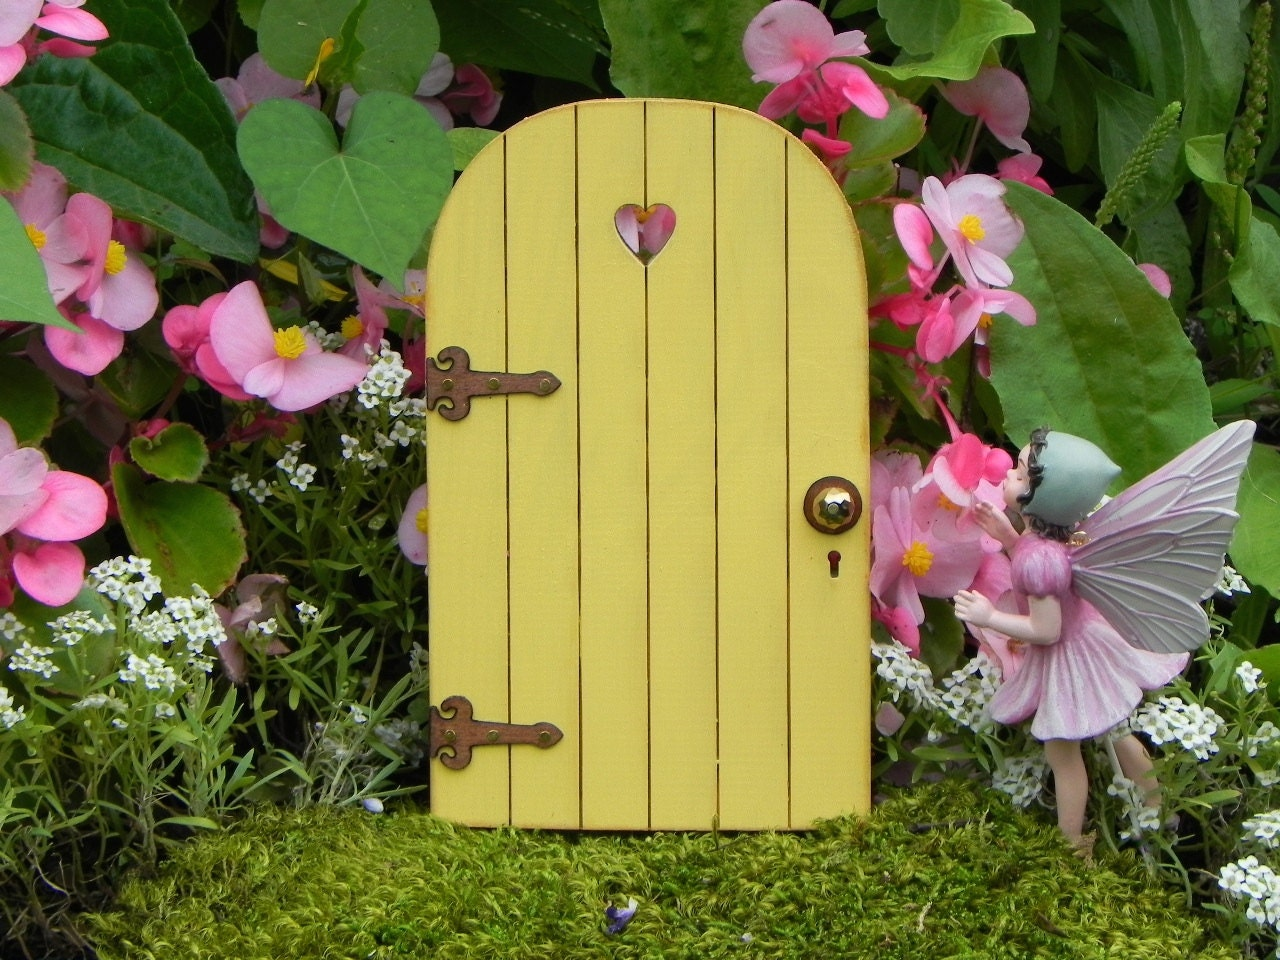 Fairy Door Fairy Garden Miniature Accessories YELLOW